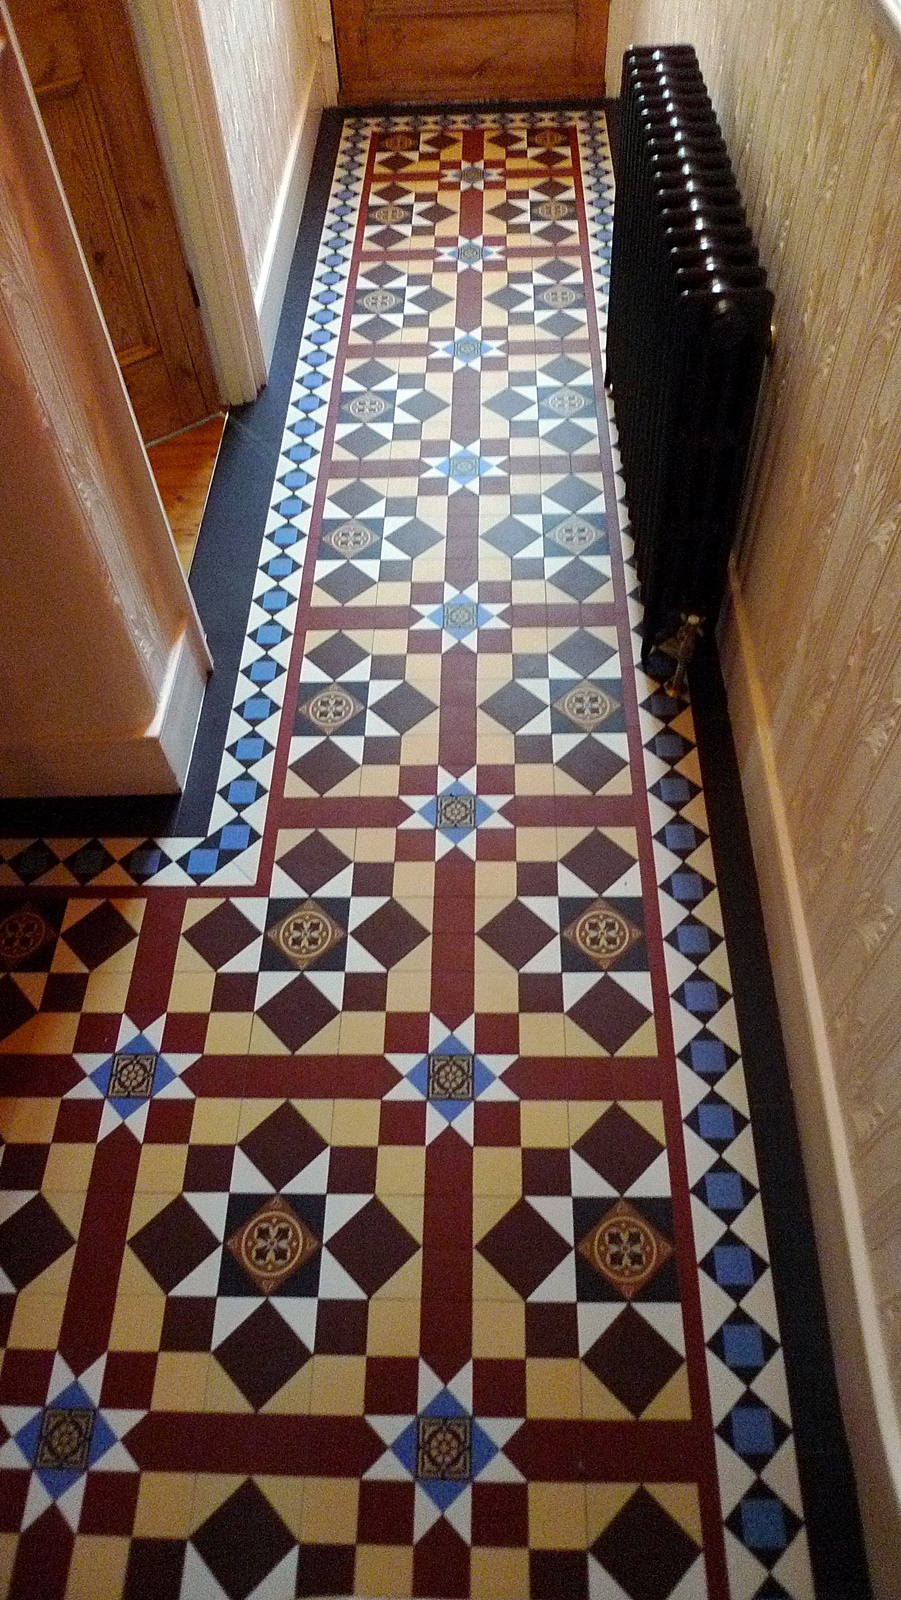 victorian and edwardian mosaic hallway tile path westminster kensington chelsea fulham london